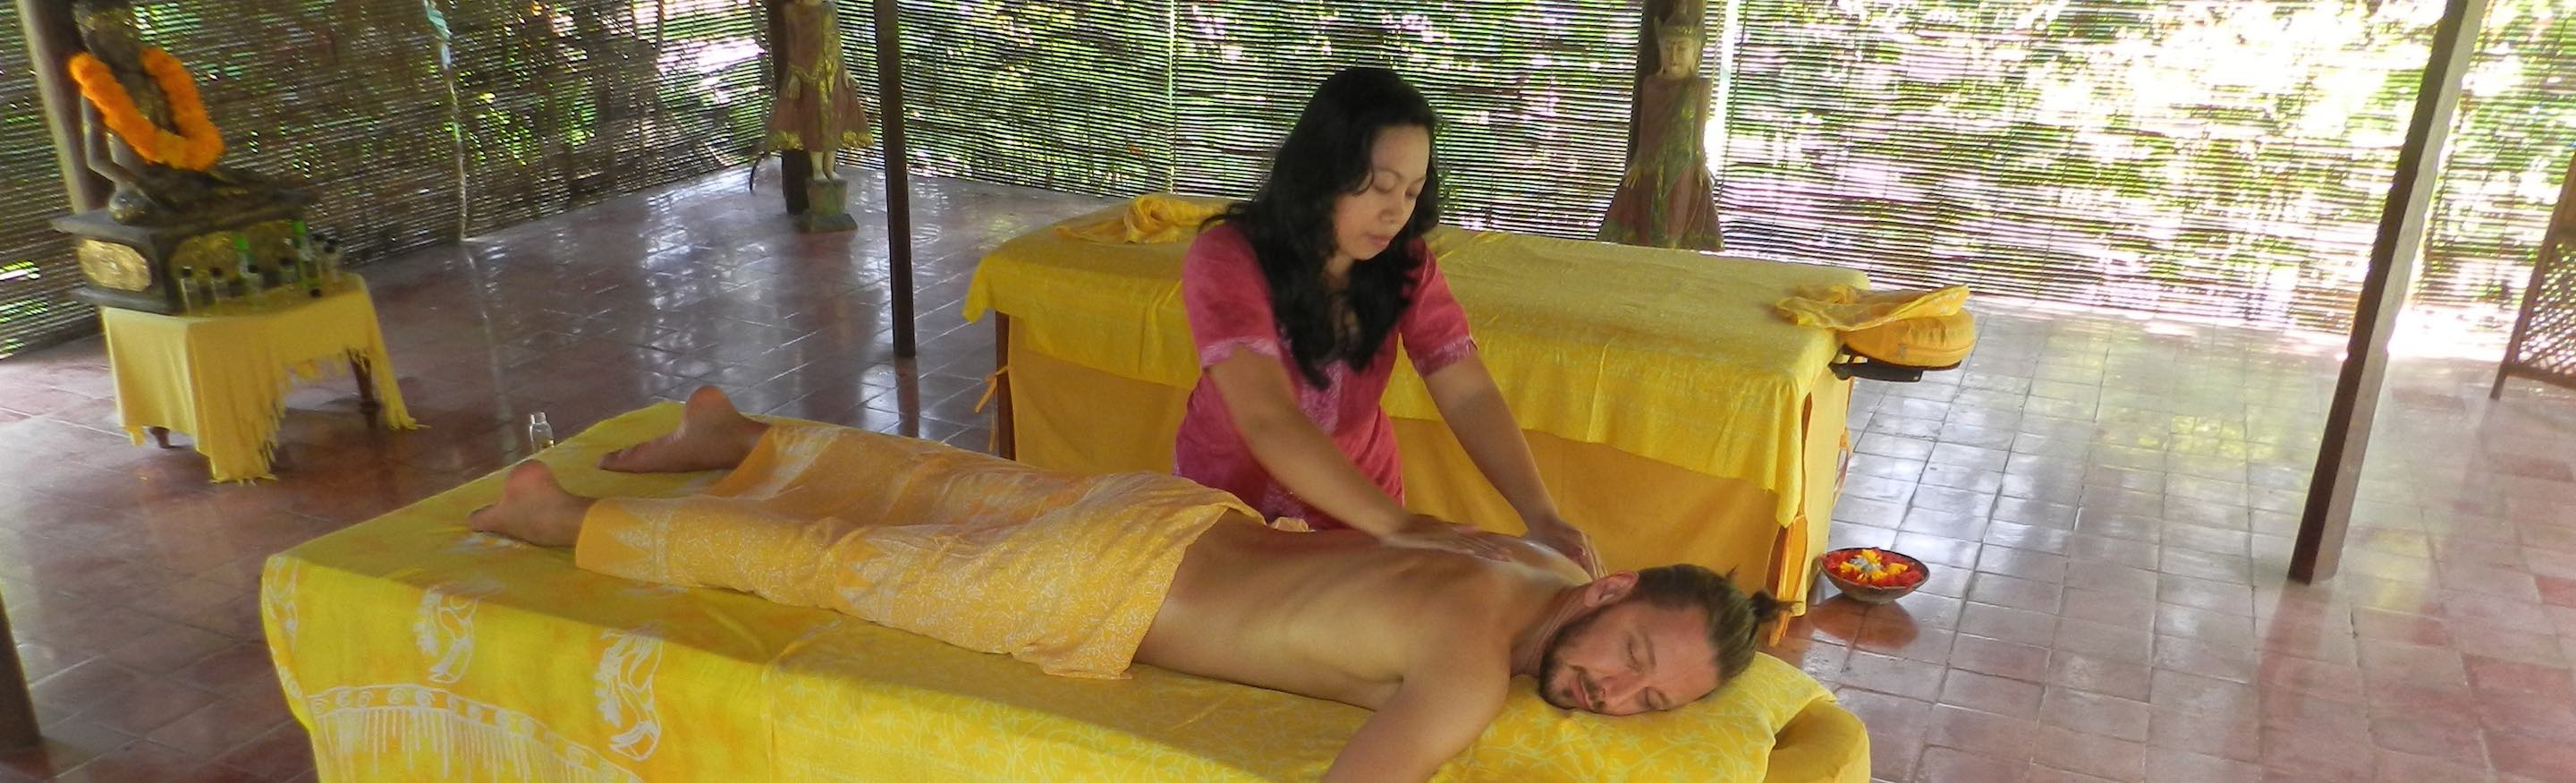 Bild Massage im Spa Pavillion Bali Mandala